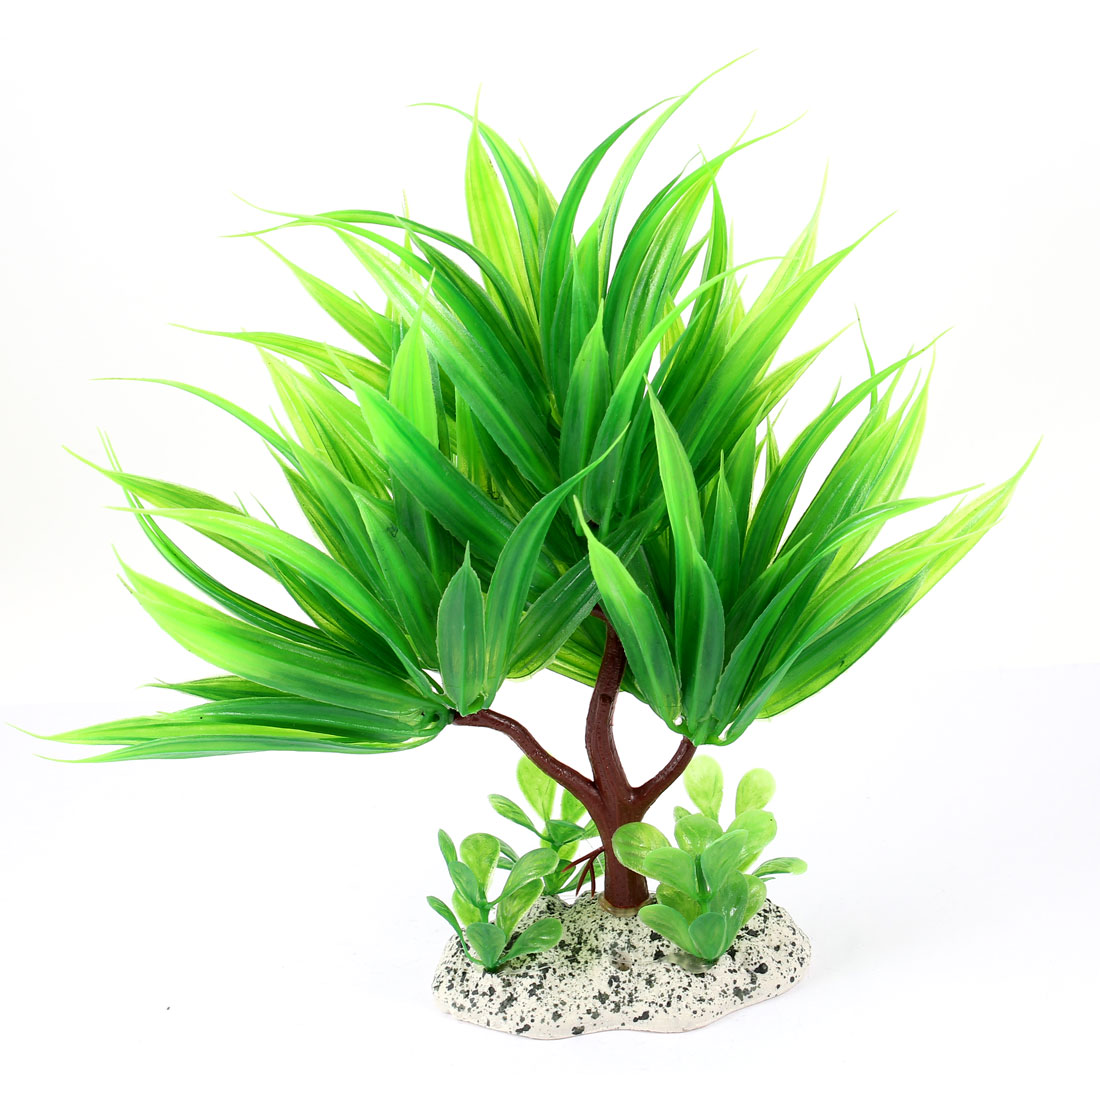 "Aquarium Fish Tank Ornament Landscaping Artificial Emulational Underwater Water Plant Grass Decor Green 8.3"" Height"